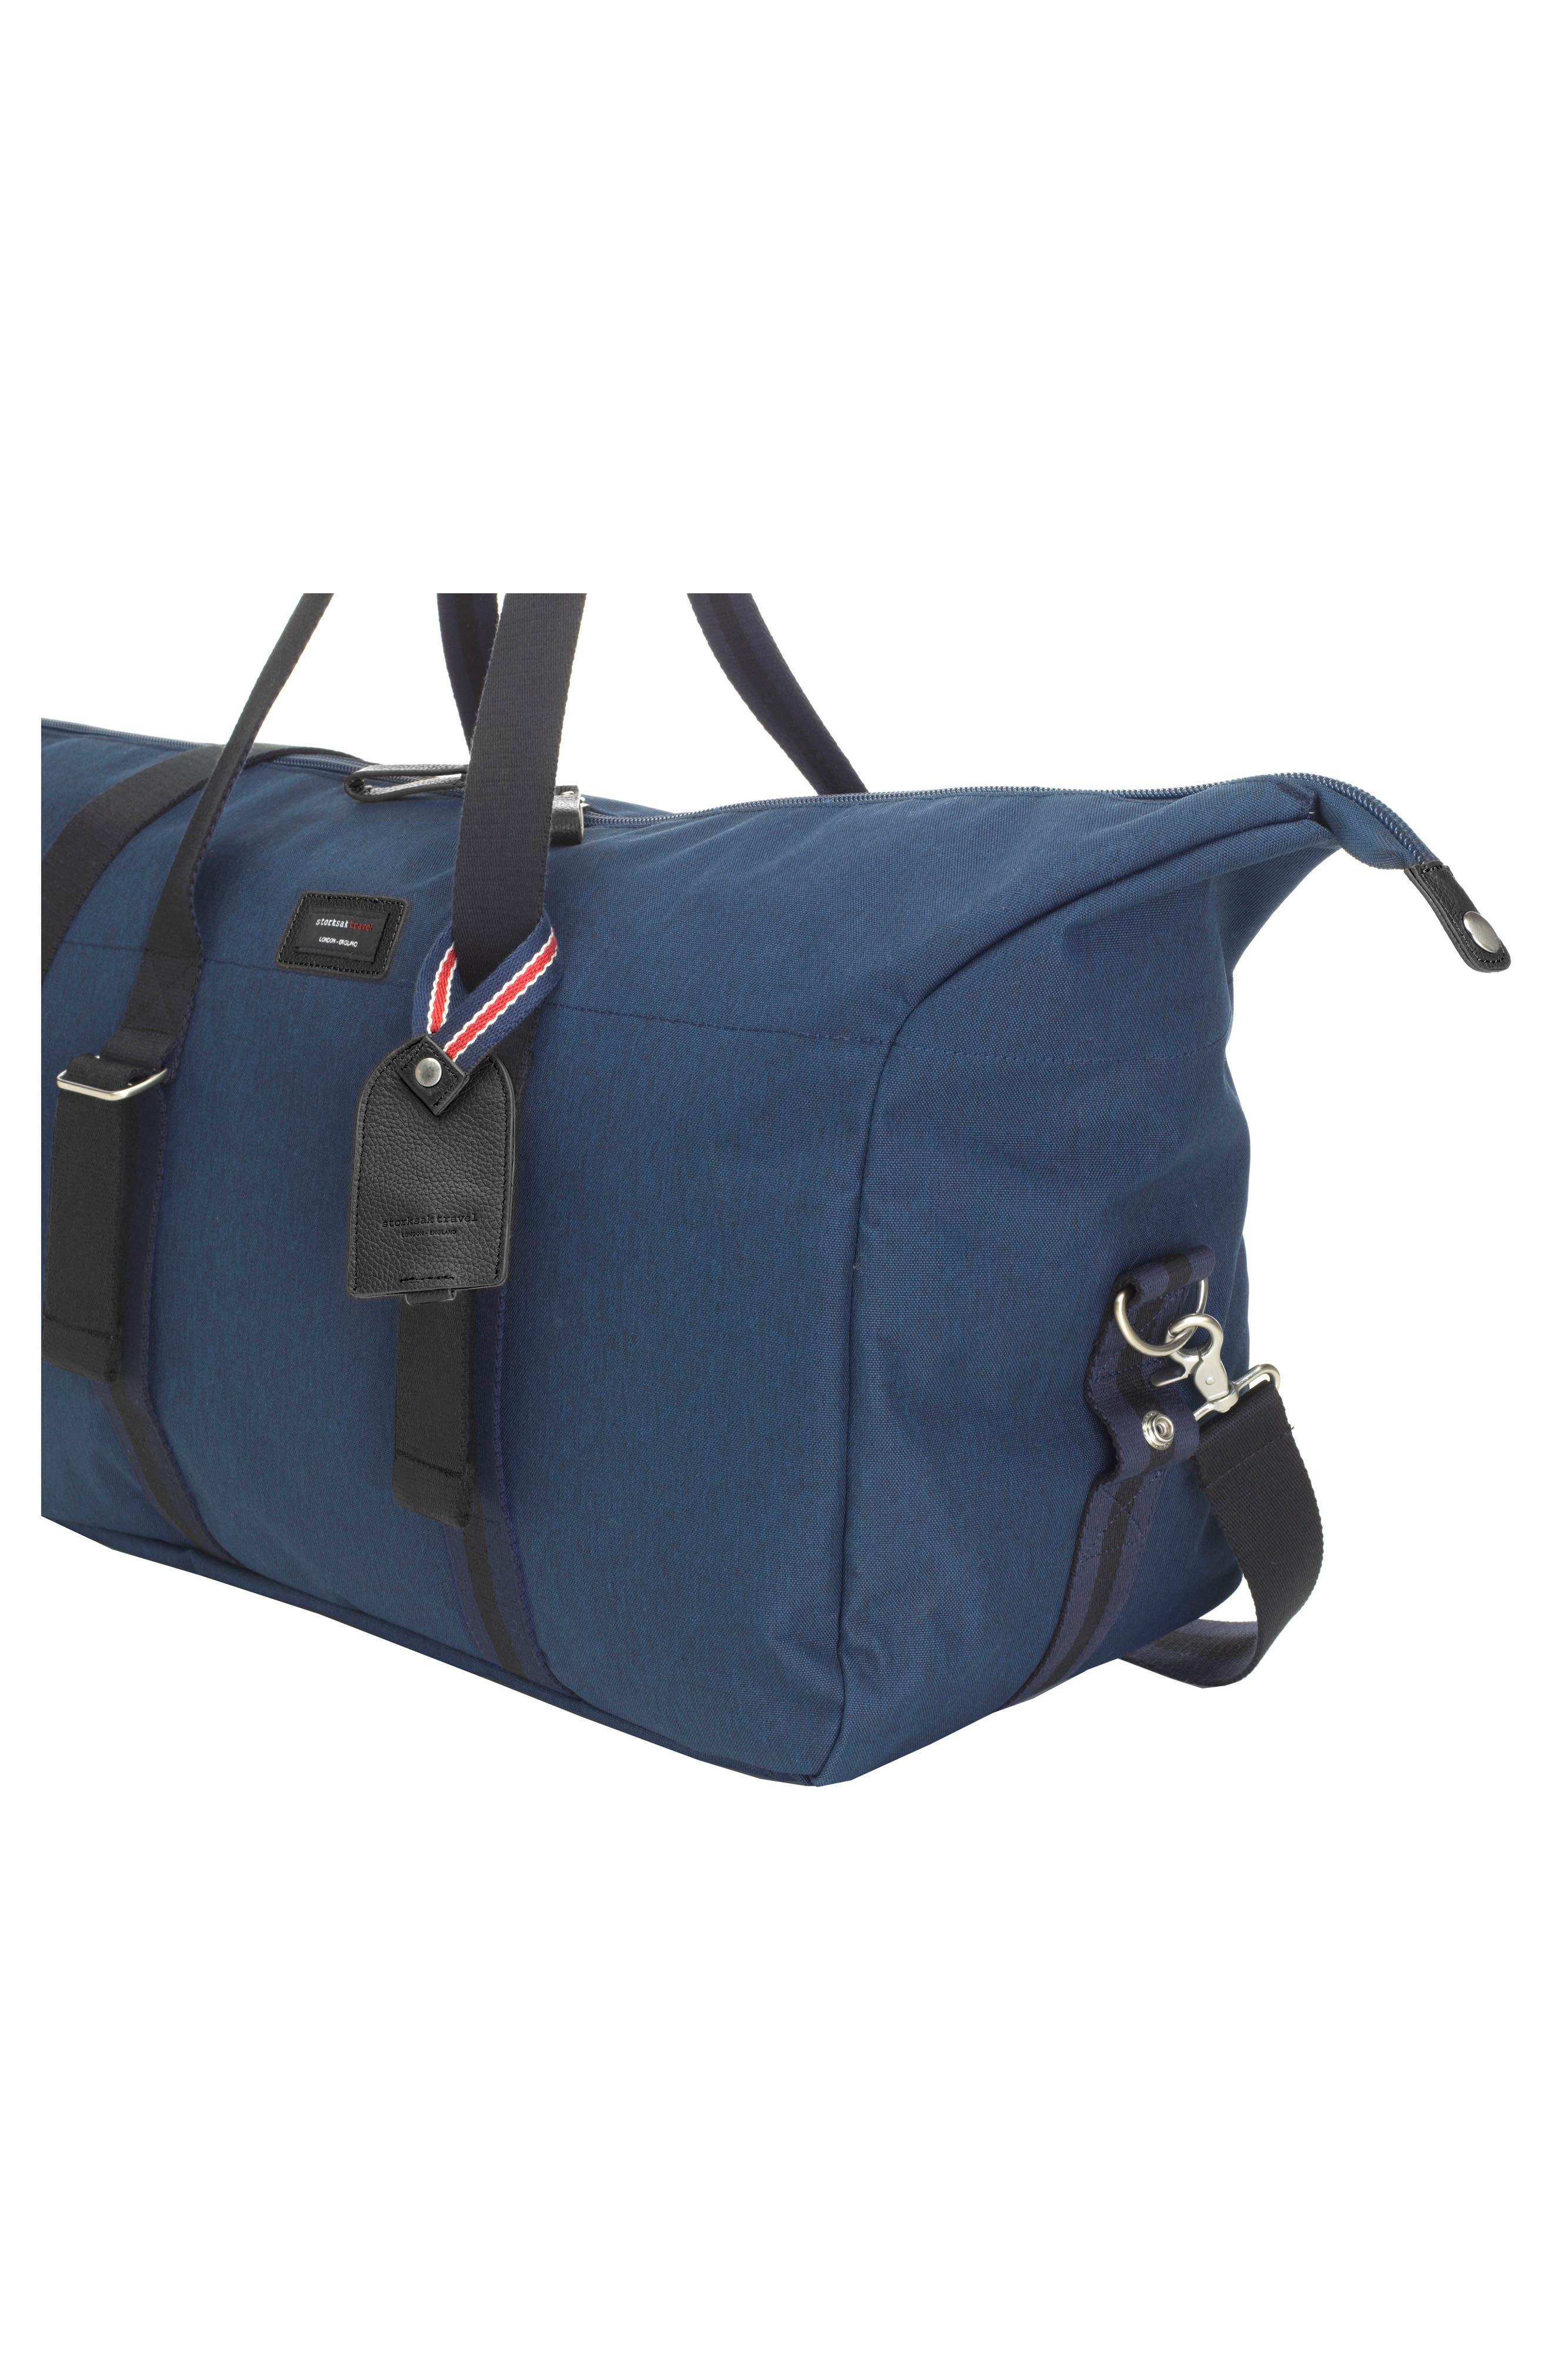 Cabin Wheeled 21-Inch Carry-On with Hanging Organizer,                             Alternate thumbnail 4, color,                             NAVY